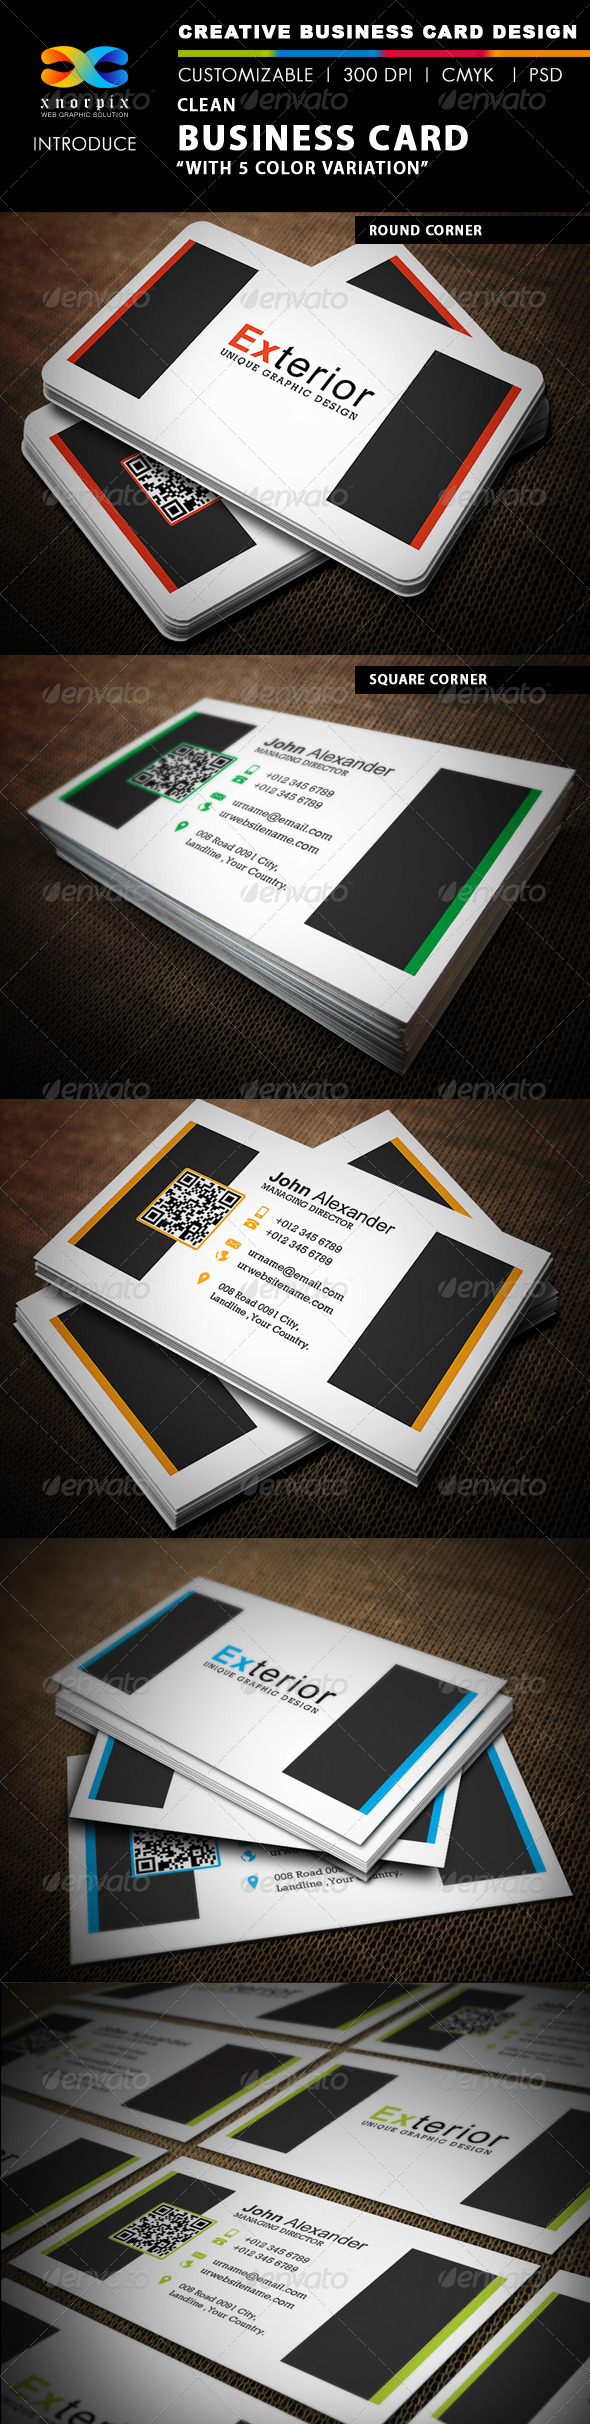 GraphicRiver Clean Business Card 4617273